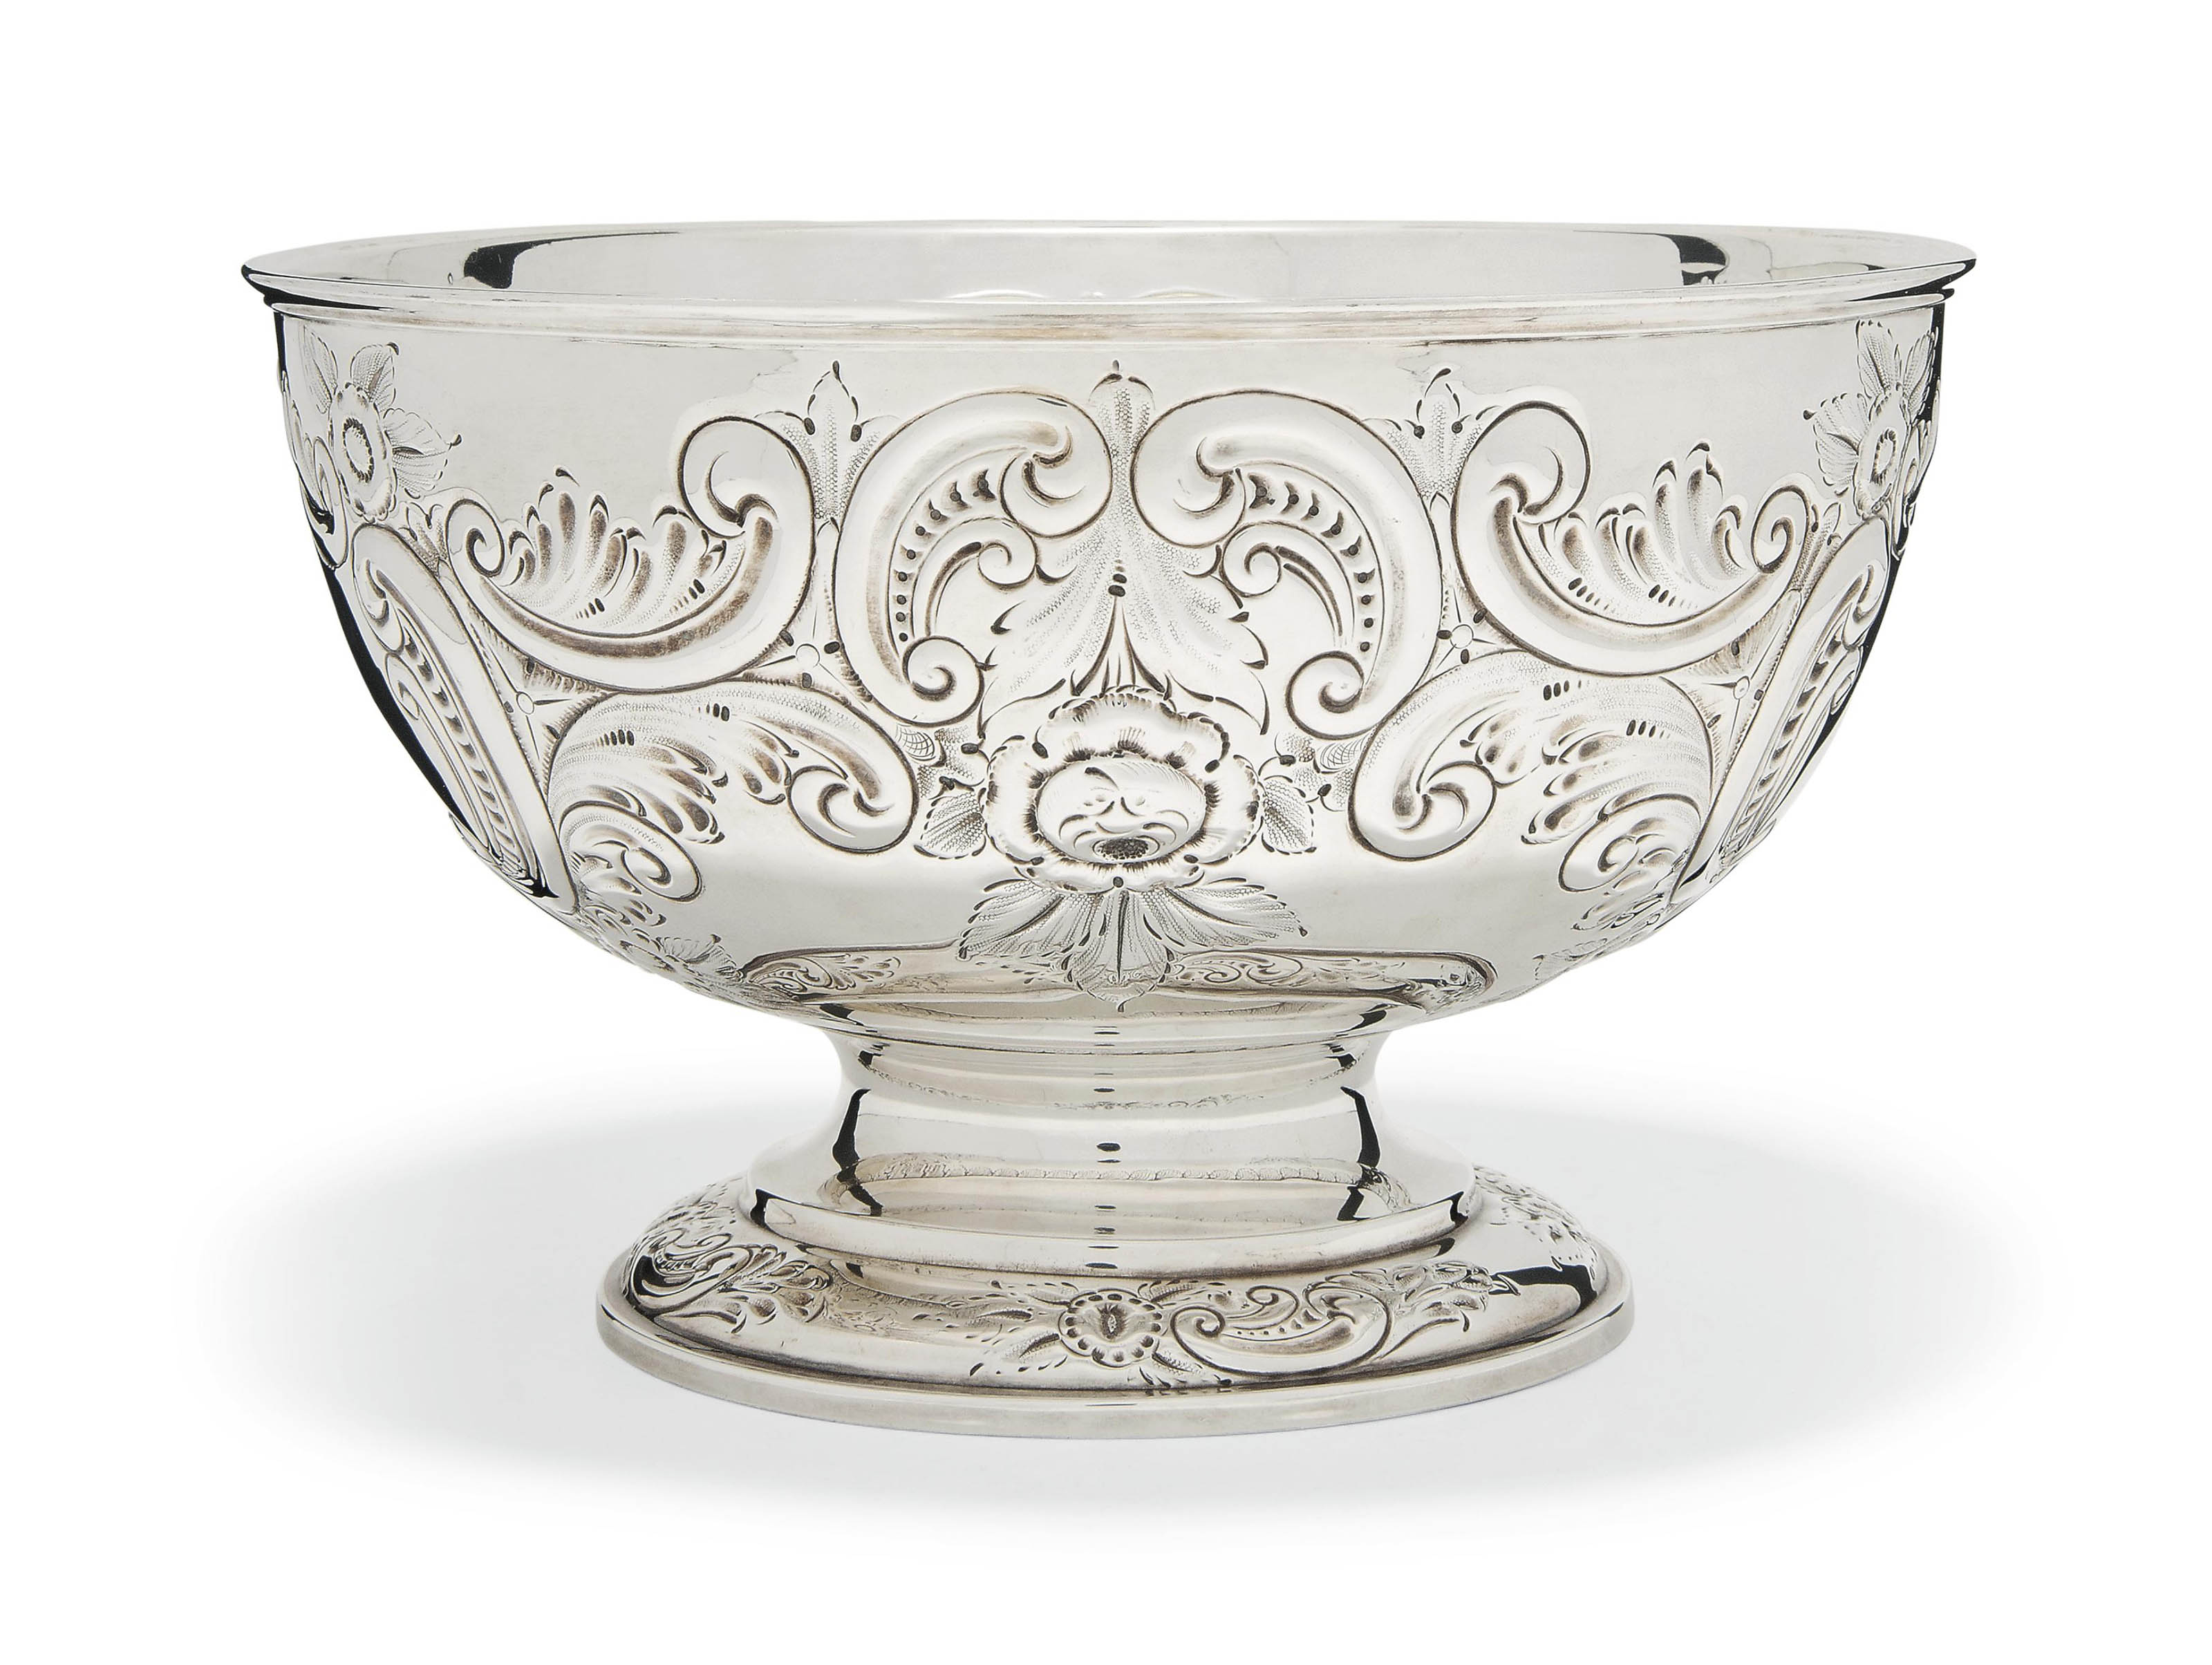 A LATE VICTORIAN SILVER ROSE B